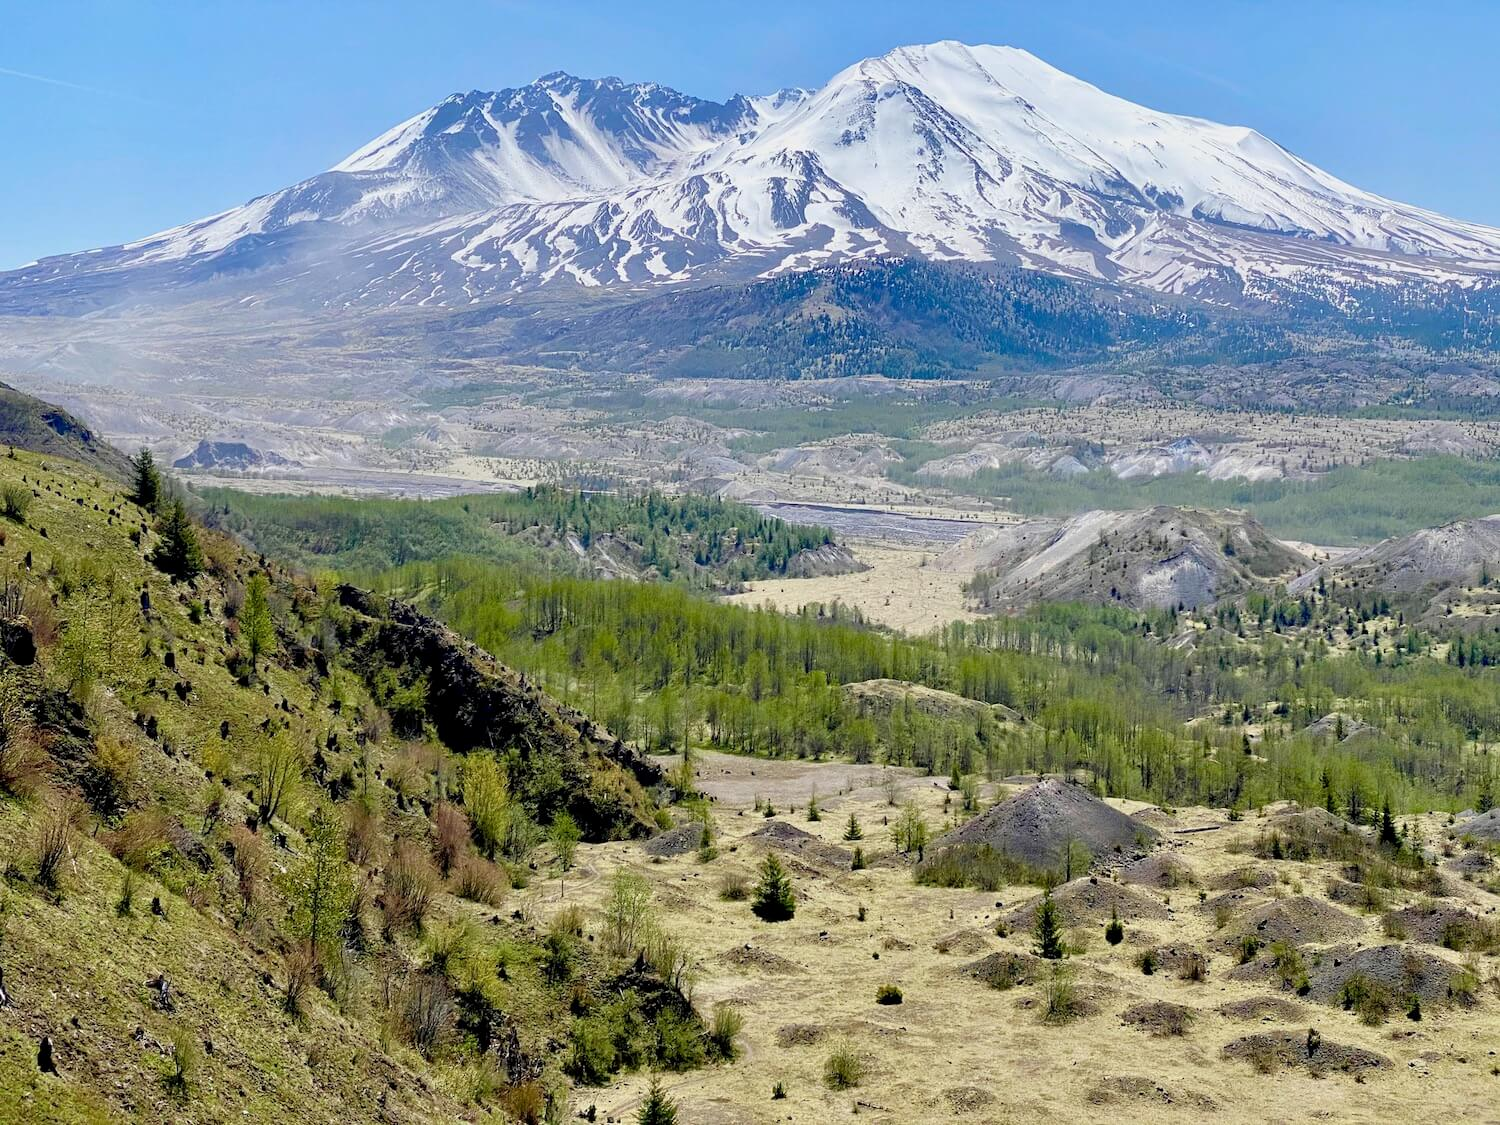 A view of Mt. St. Helens from the Hummocks hiking trail leading to the Loowit Viewpoint.  The mountain is covered with white snow which pops against the blue sky in the background.  The foreground has a steep hill of green brush and ground covers with a flat lowland area with a few bumps of gray ash piles.